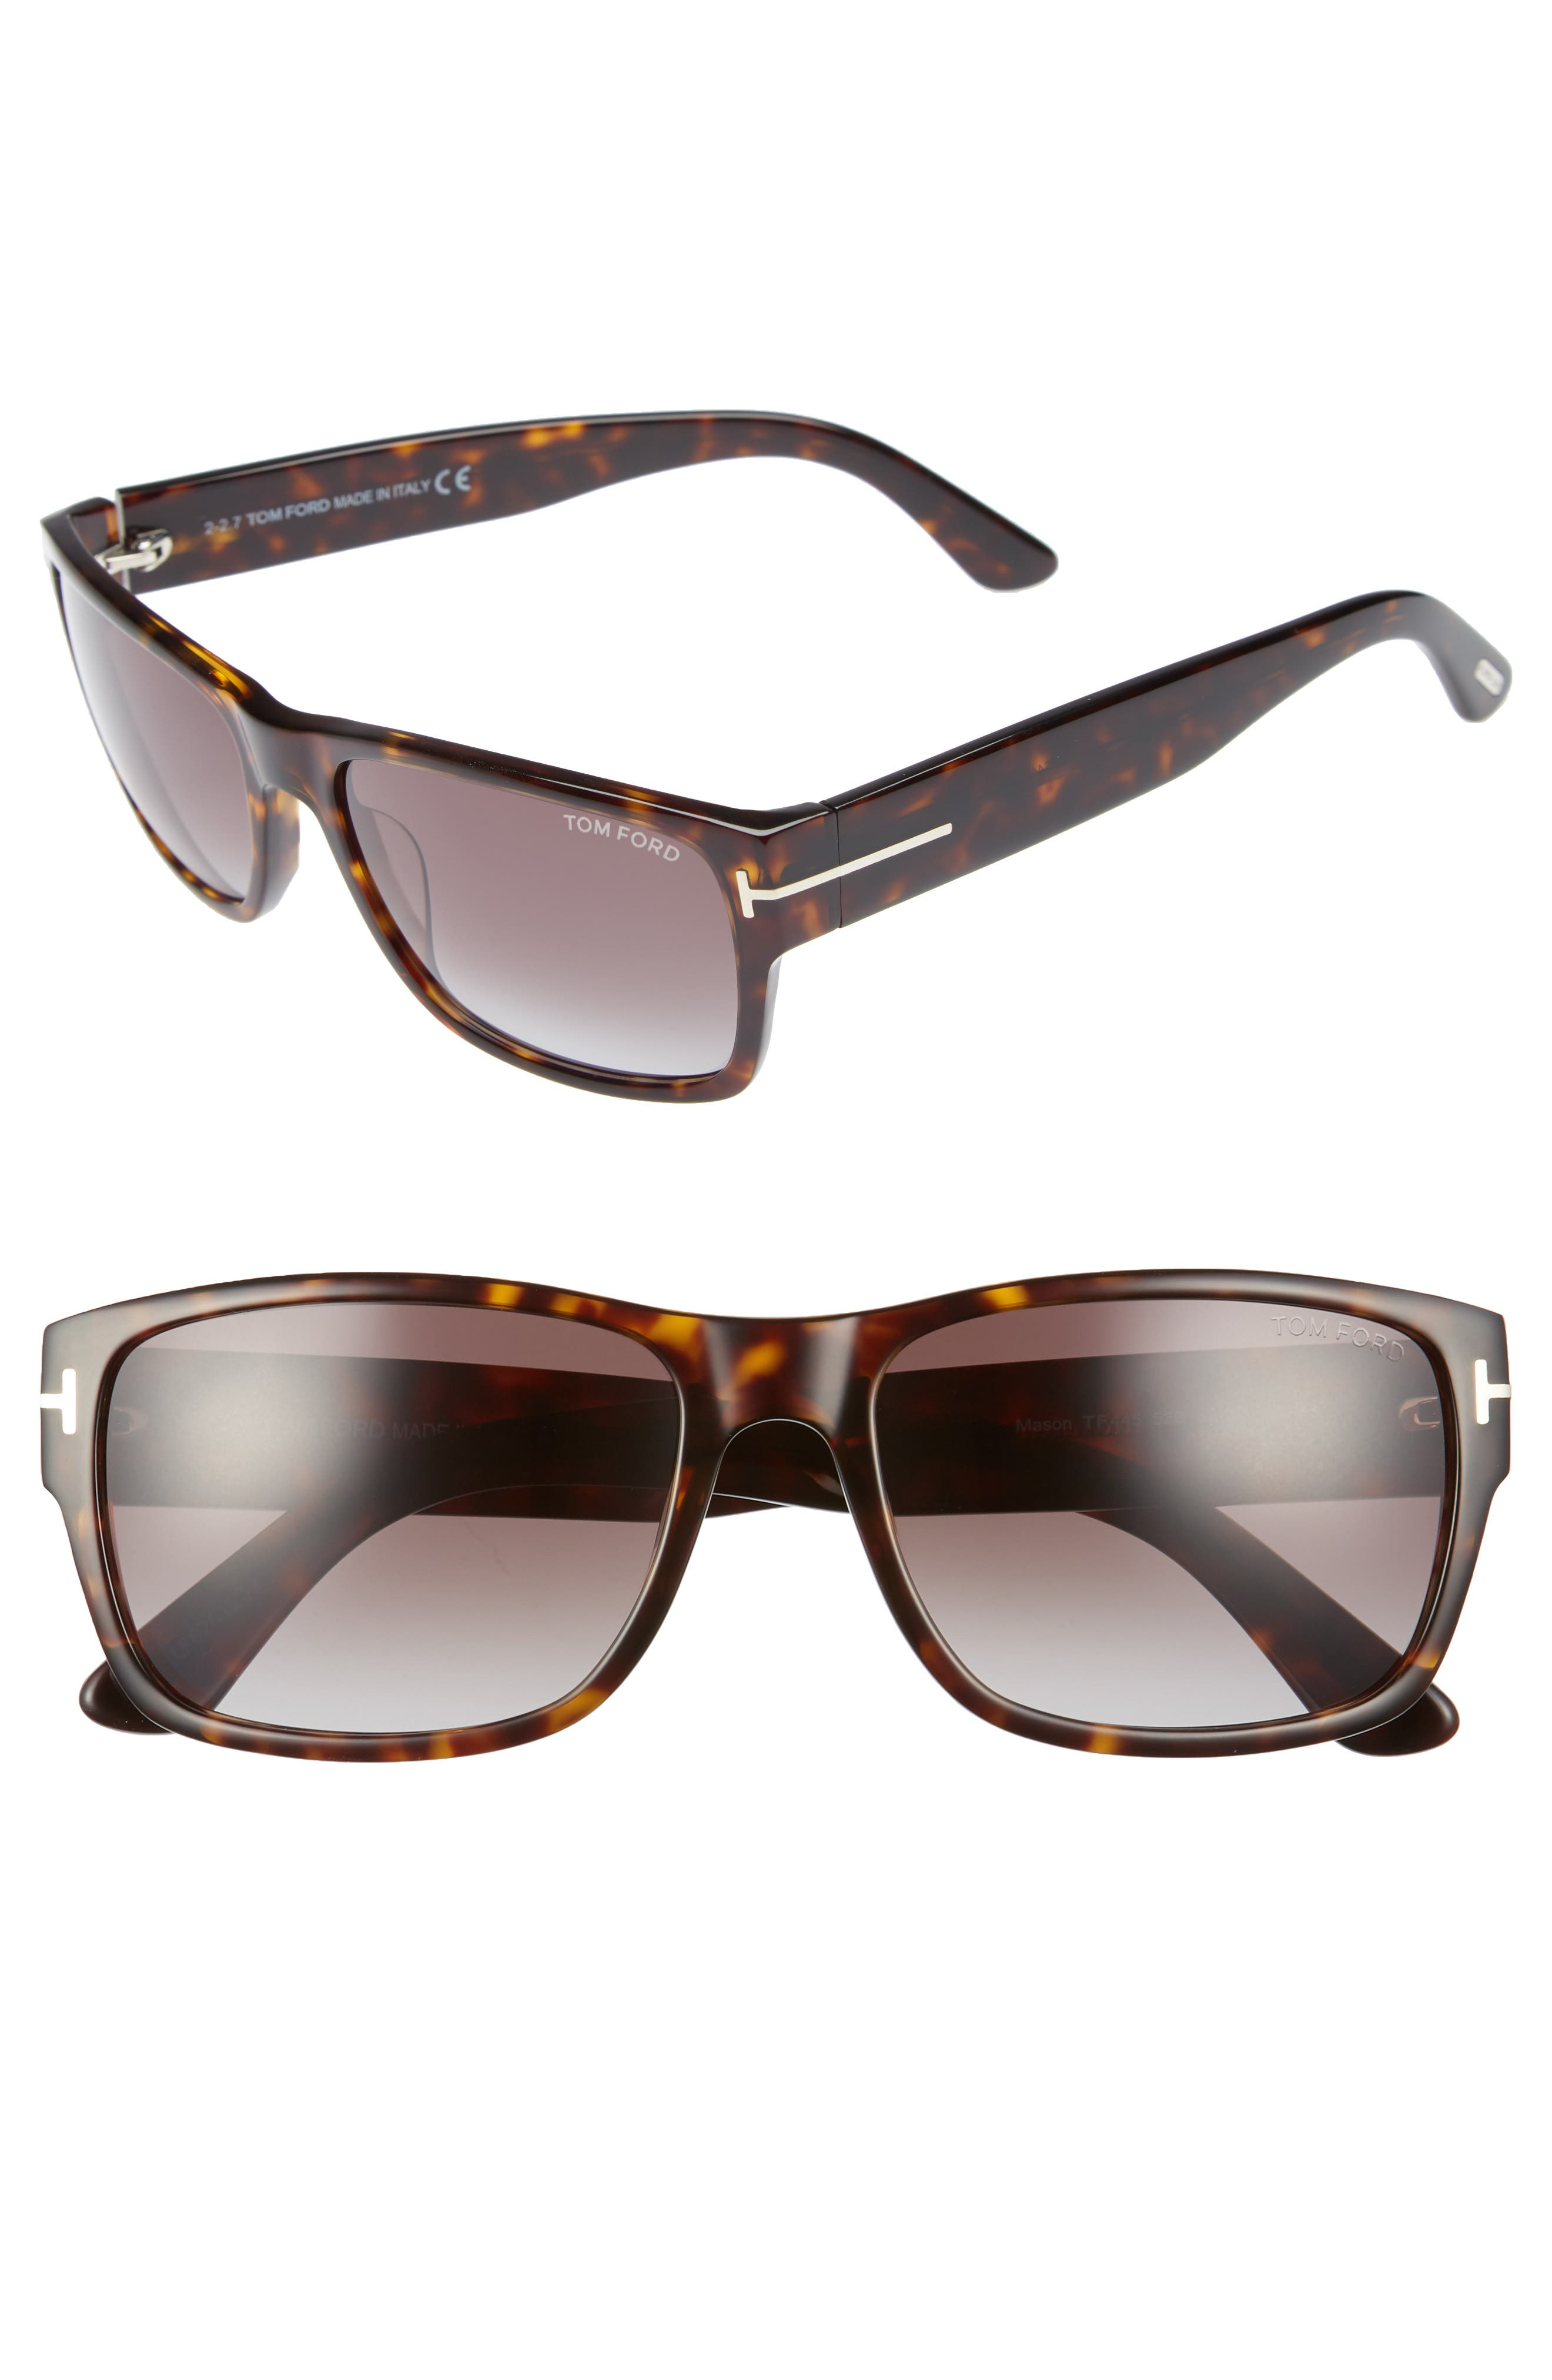 Alternate Image 1 Selected - Tom Ford 'Mason' 58mm Sunglasses